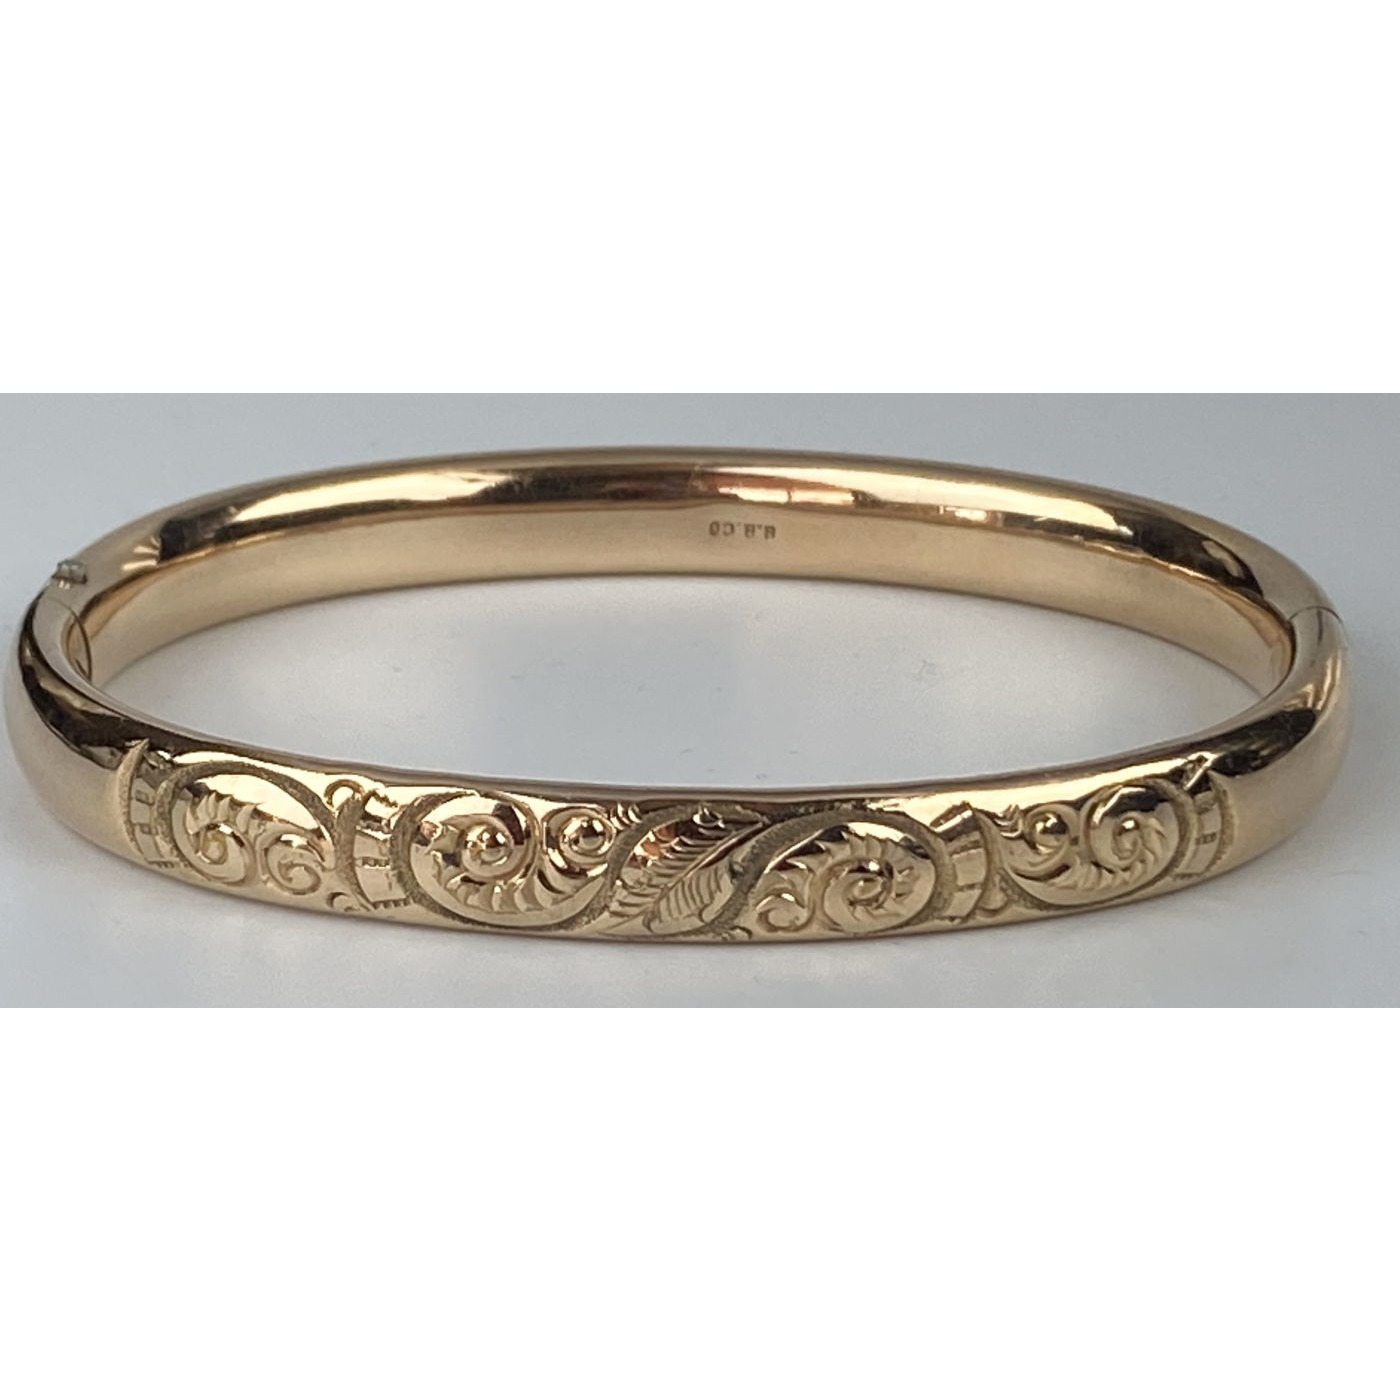 Narrow Larger-Than-Average Deeply Engraved Engagement Bangle